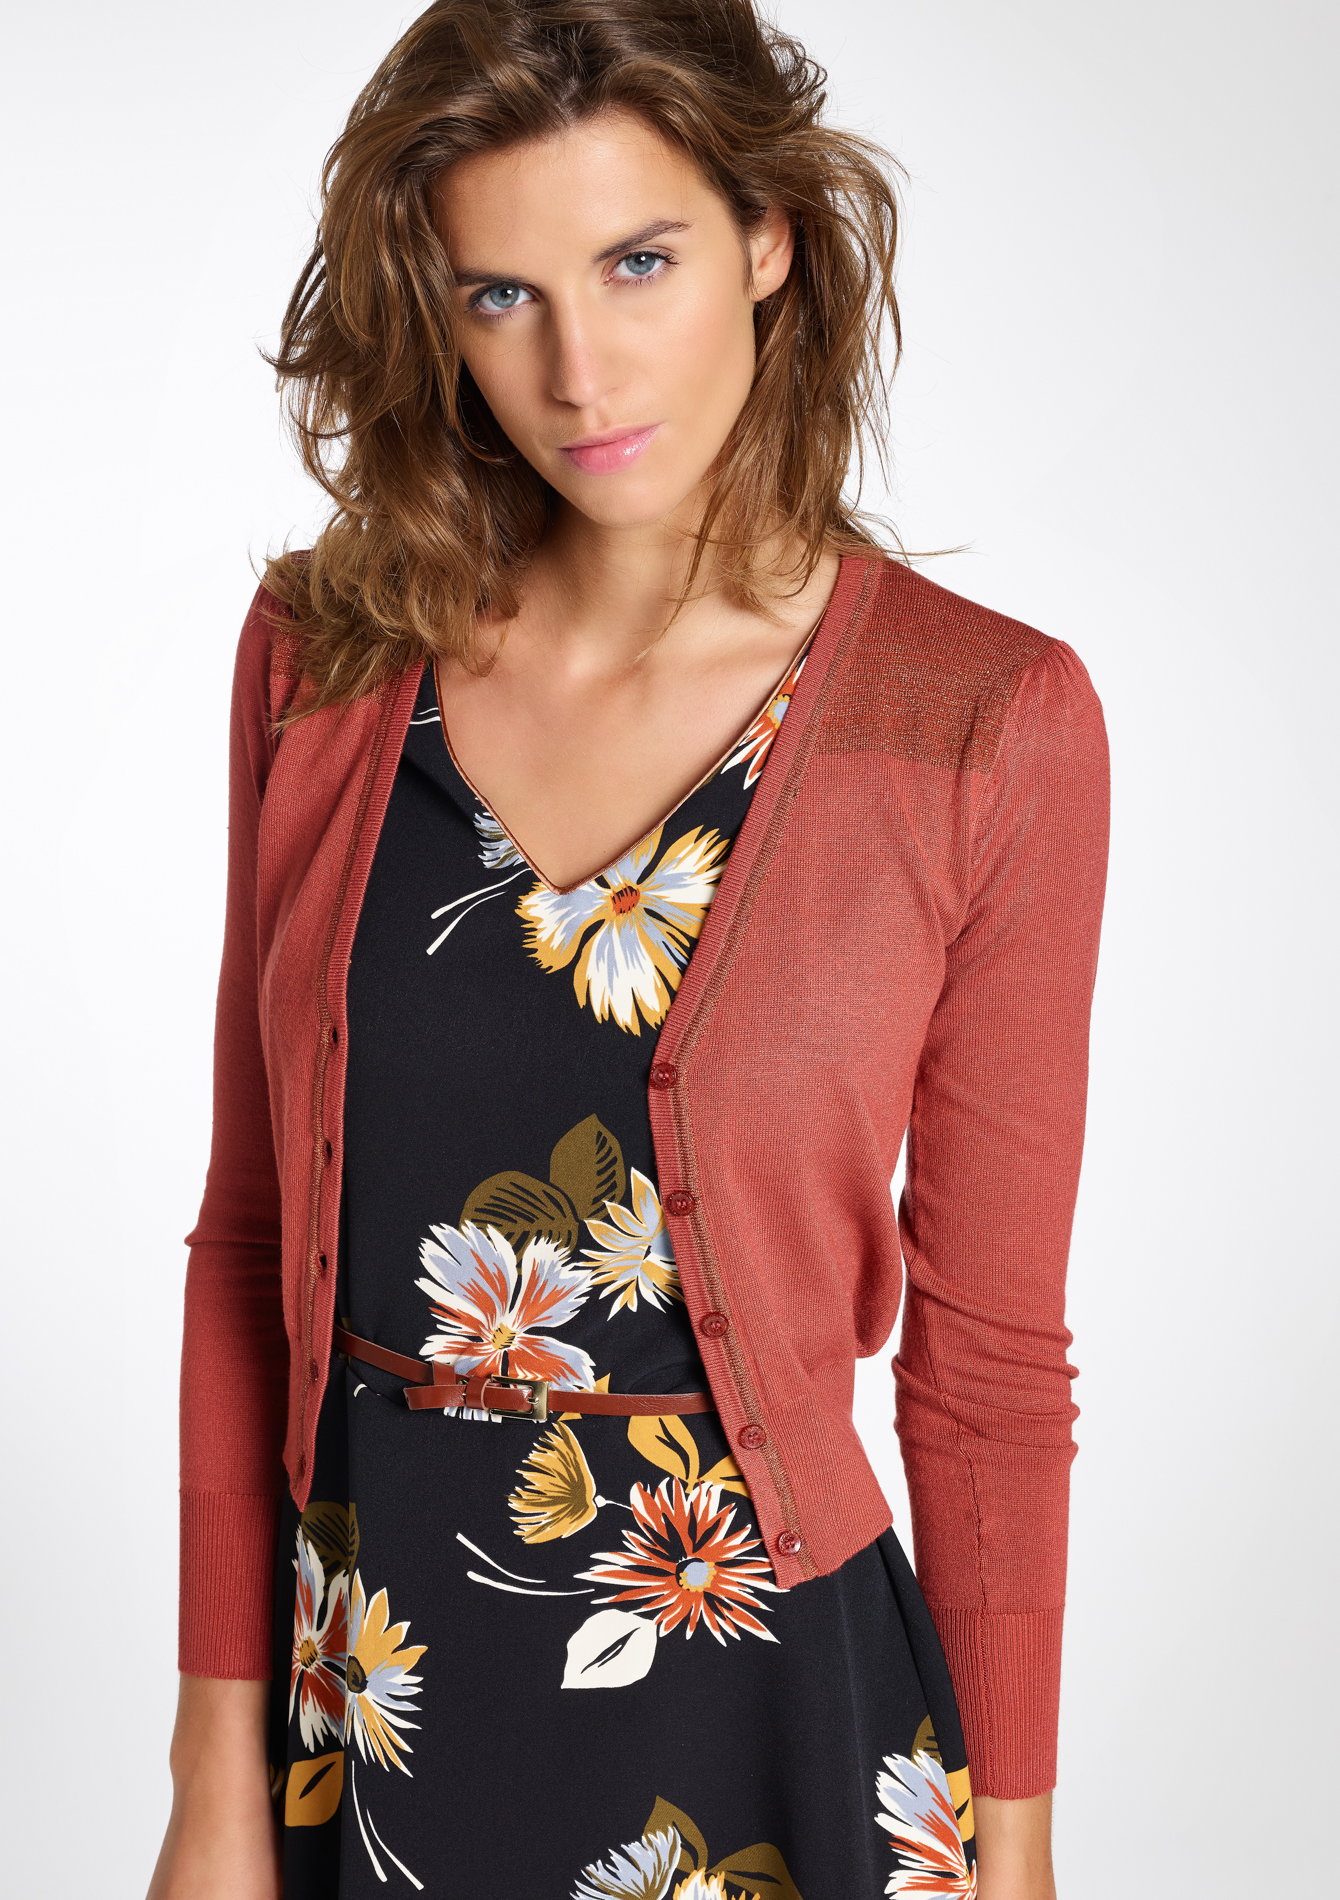 Red Hanger. Cardigans for Women - Short Sleeve Womens Open Cardigan Sweaters. Inorin. Womens Cardigans Short Sleeve Summer Lightweight Sheer Open Front Drape Sweater Tops. from $ 8 88 Prime. 4 out of 5 stars Chunoy. Women Casual Floral Short Sleeve Chiffon Kimono Shawl Blouse Top. from $ 13 99 Prime. out of 5 stars OLRAIN.